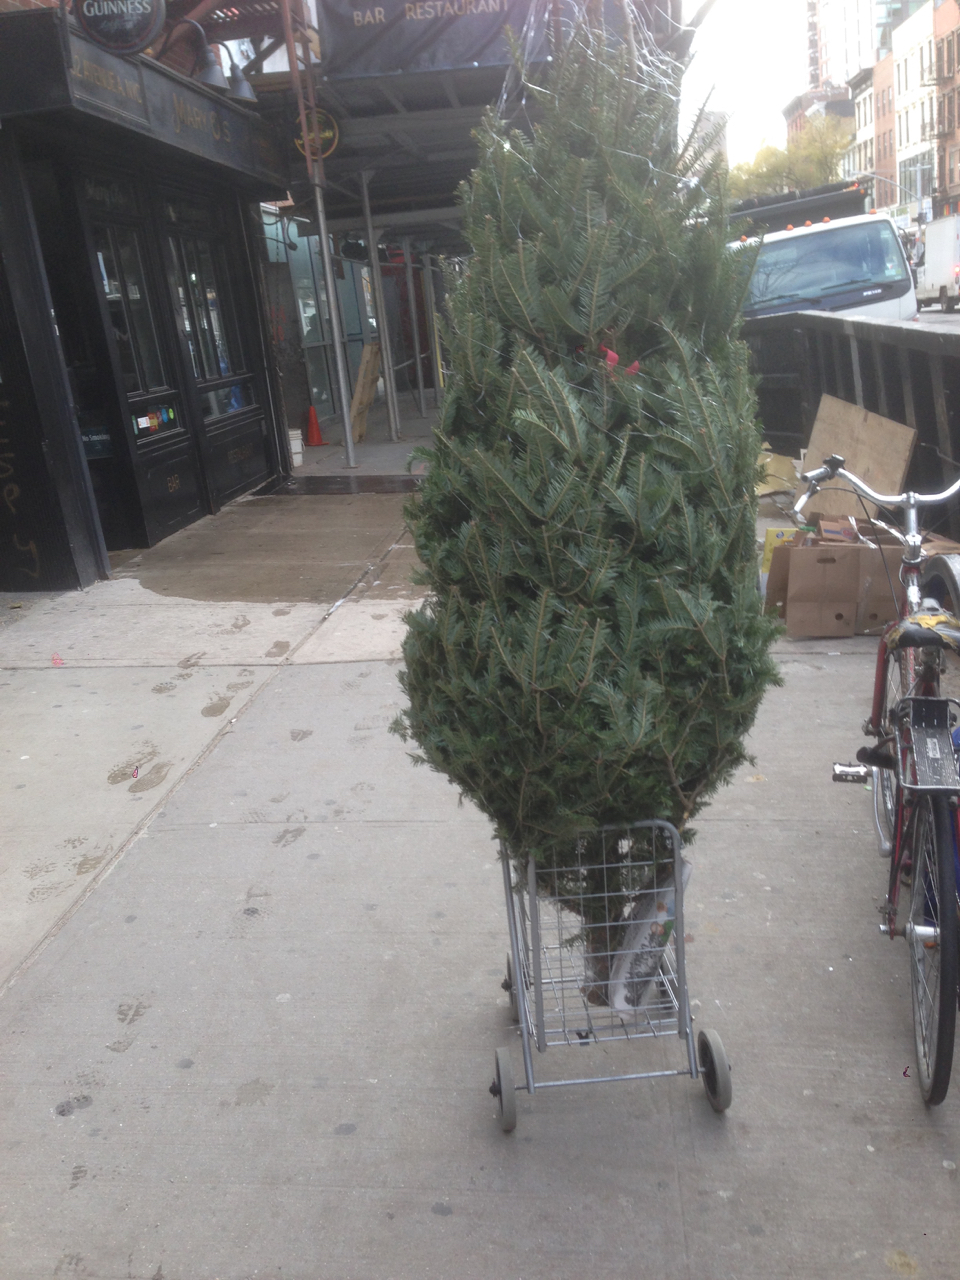 Tree in a cart